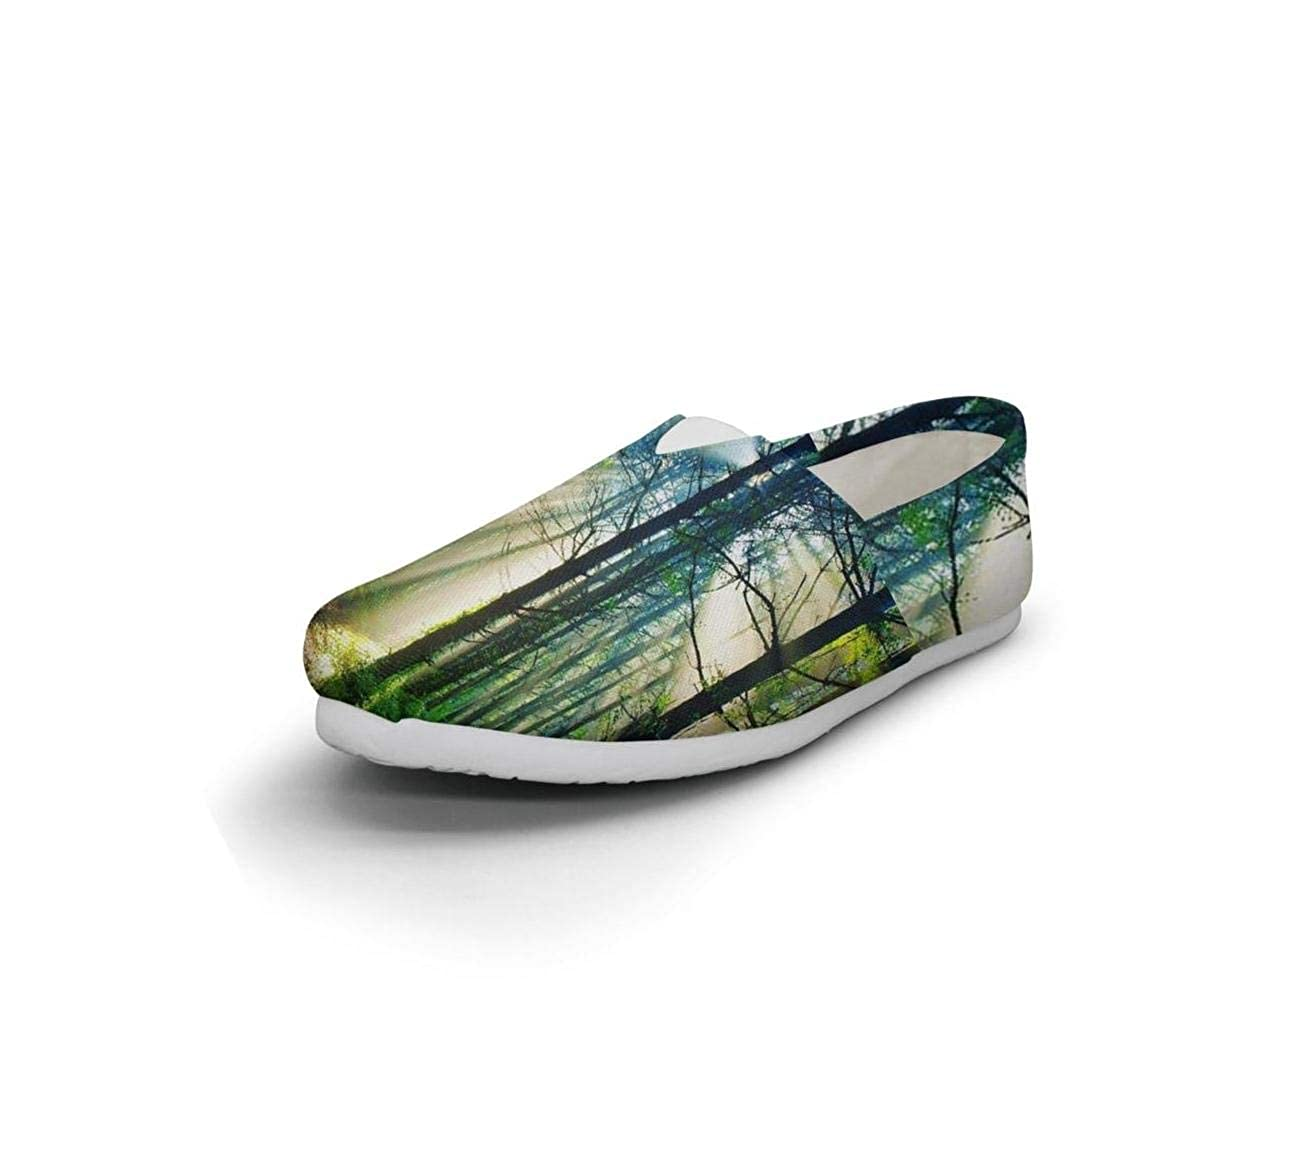 nkfbx Nature and Forest Casual Slip-On Sneakers for Women Travel